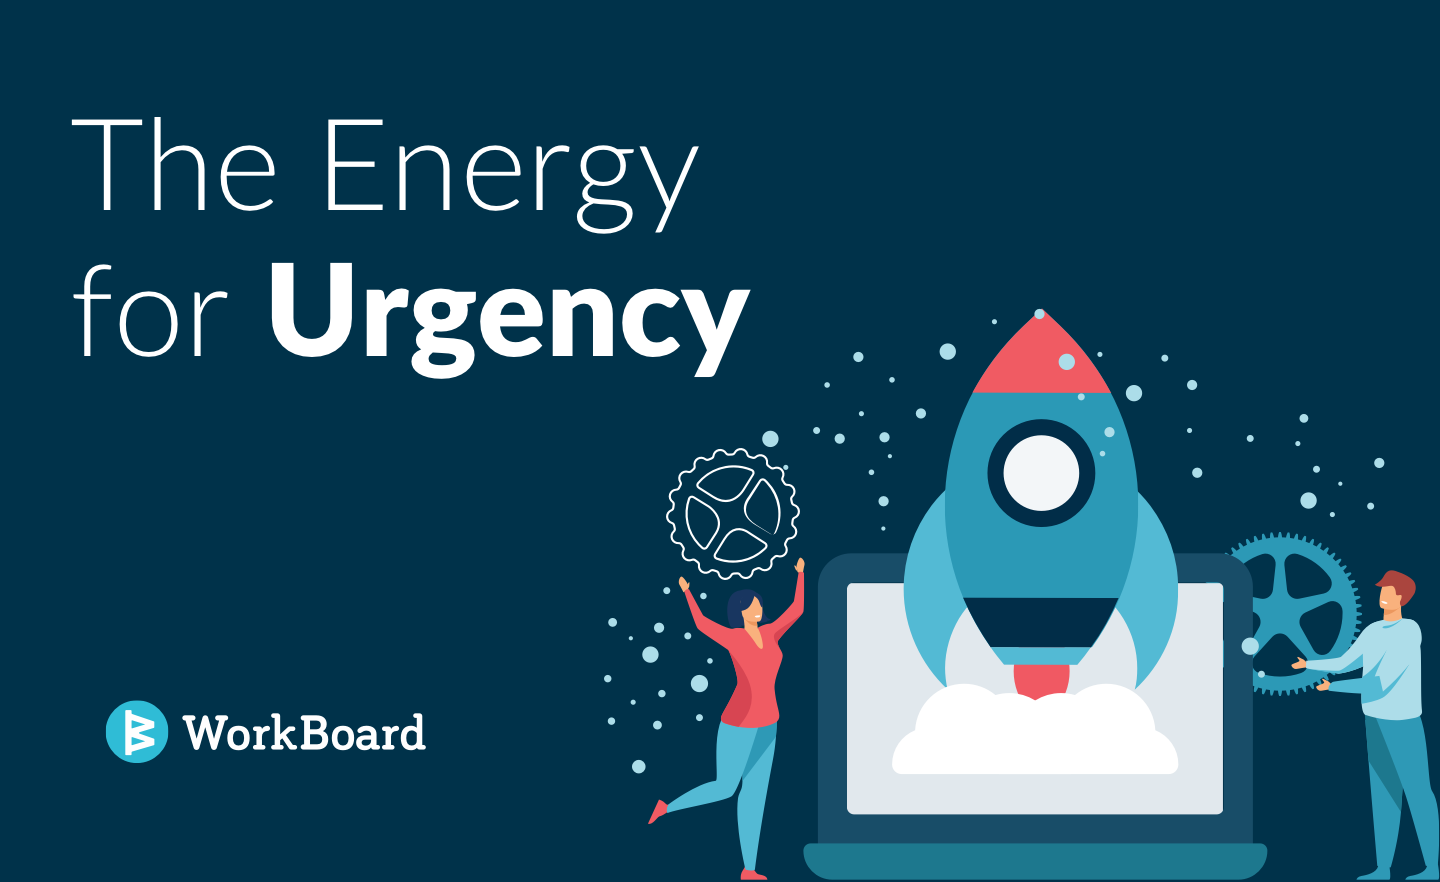 Blog Post: The Energy for Urgency